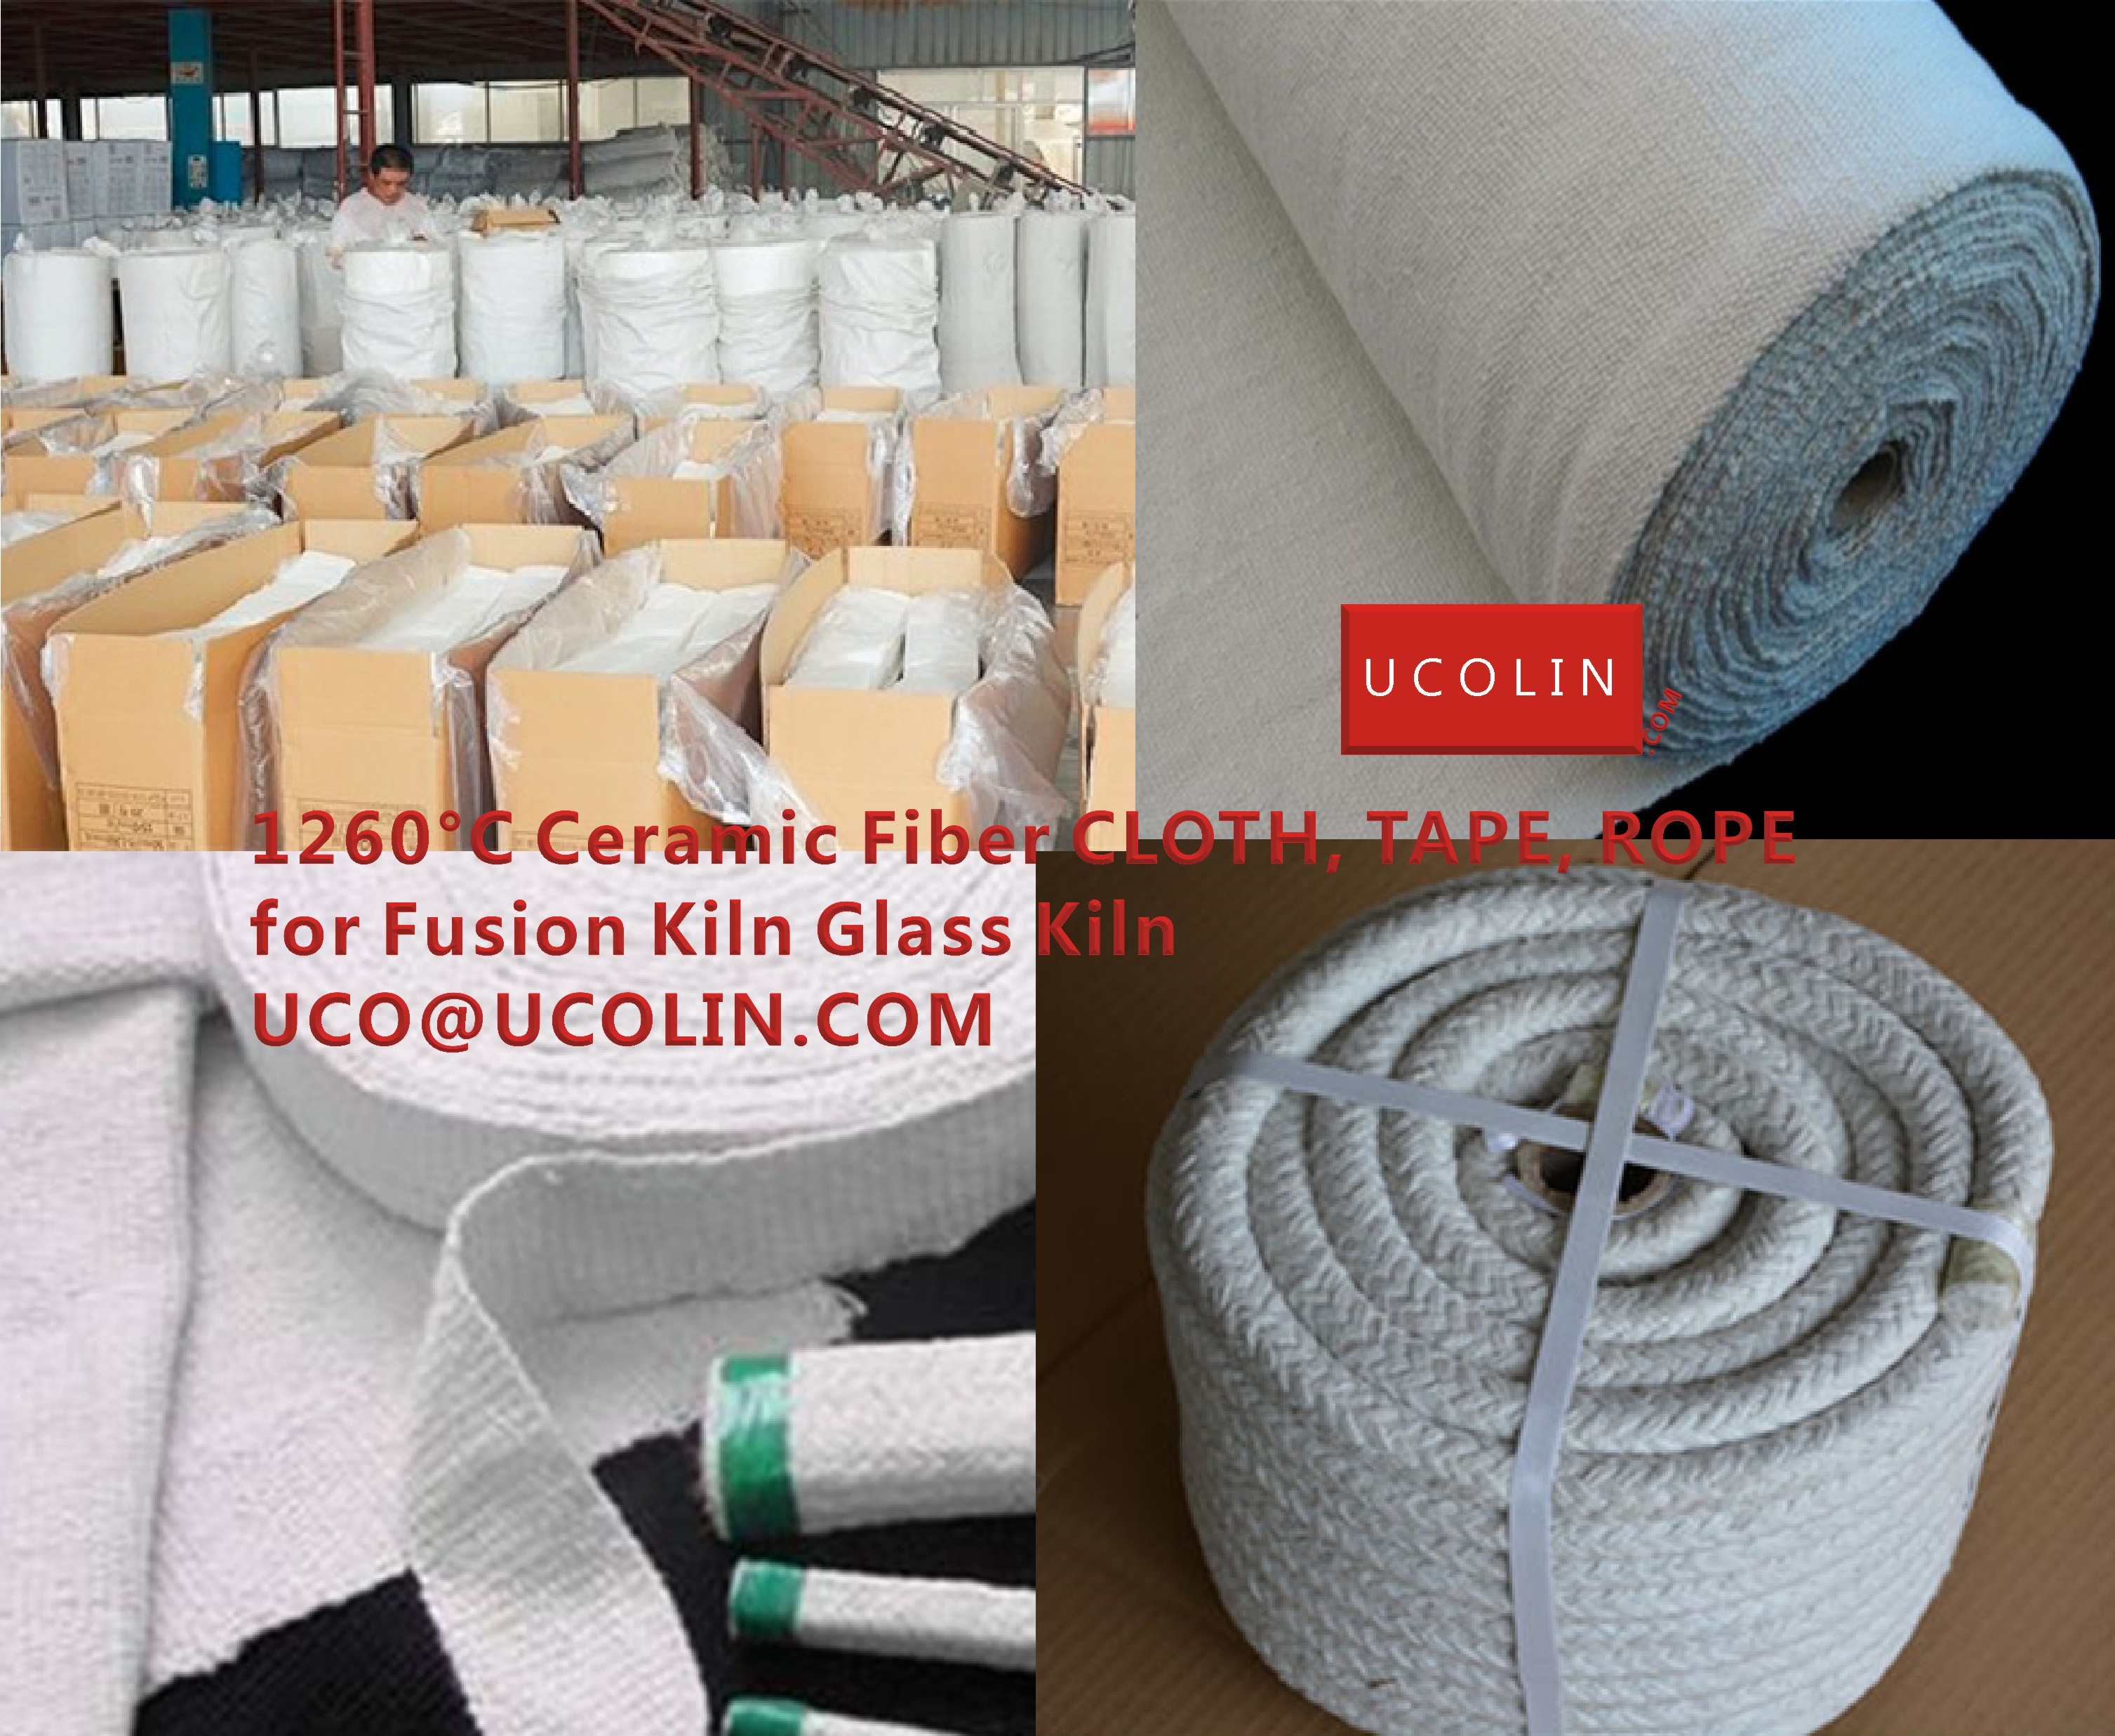 1260°C Ceramic Fiber CLOTH, TAPE, ROPE for Fusion Kiln Glass Kiln